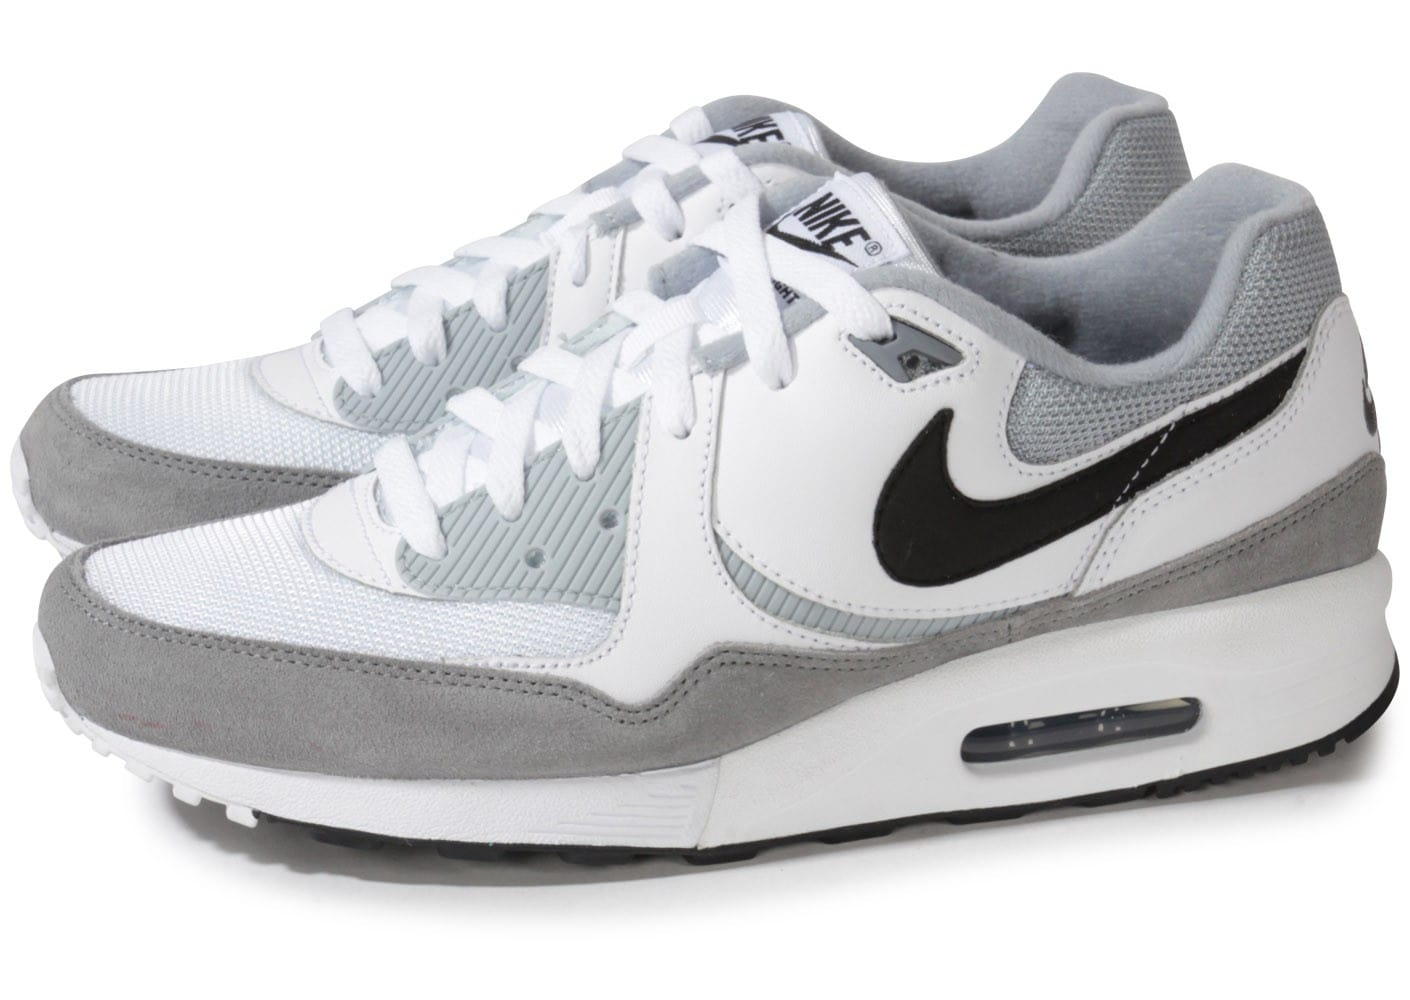 nike air max light essential blanche chaussures baskets homme chausport. Black Bedroom Furniture Sets. Home Design Ideas